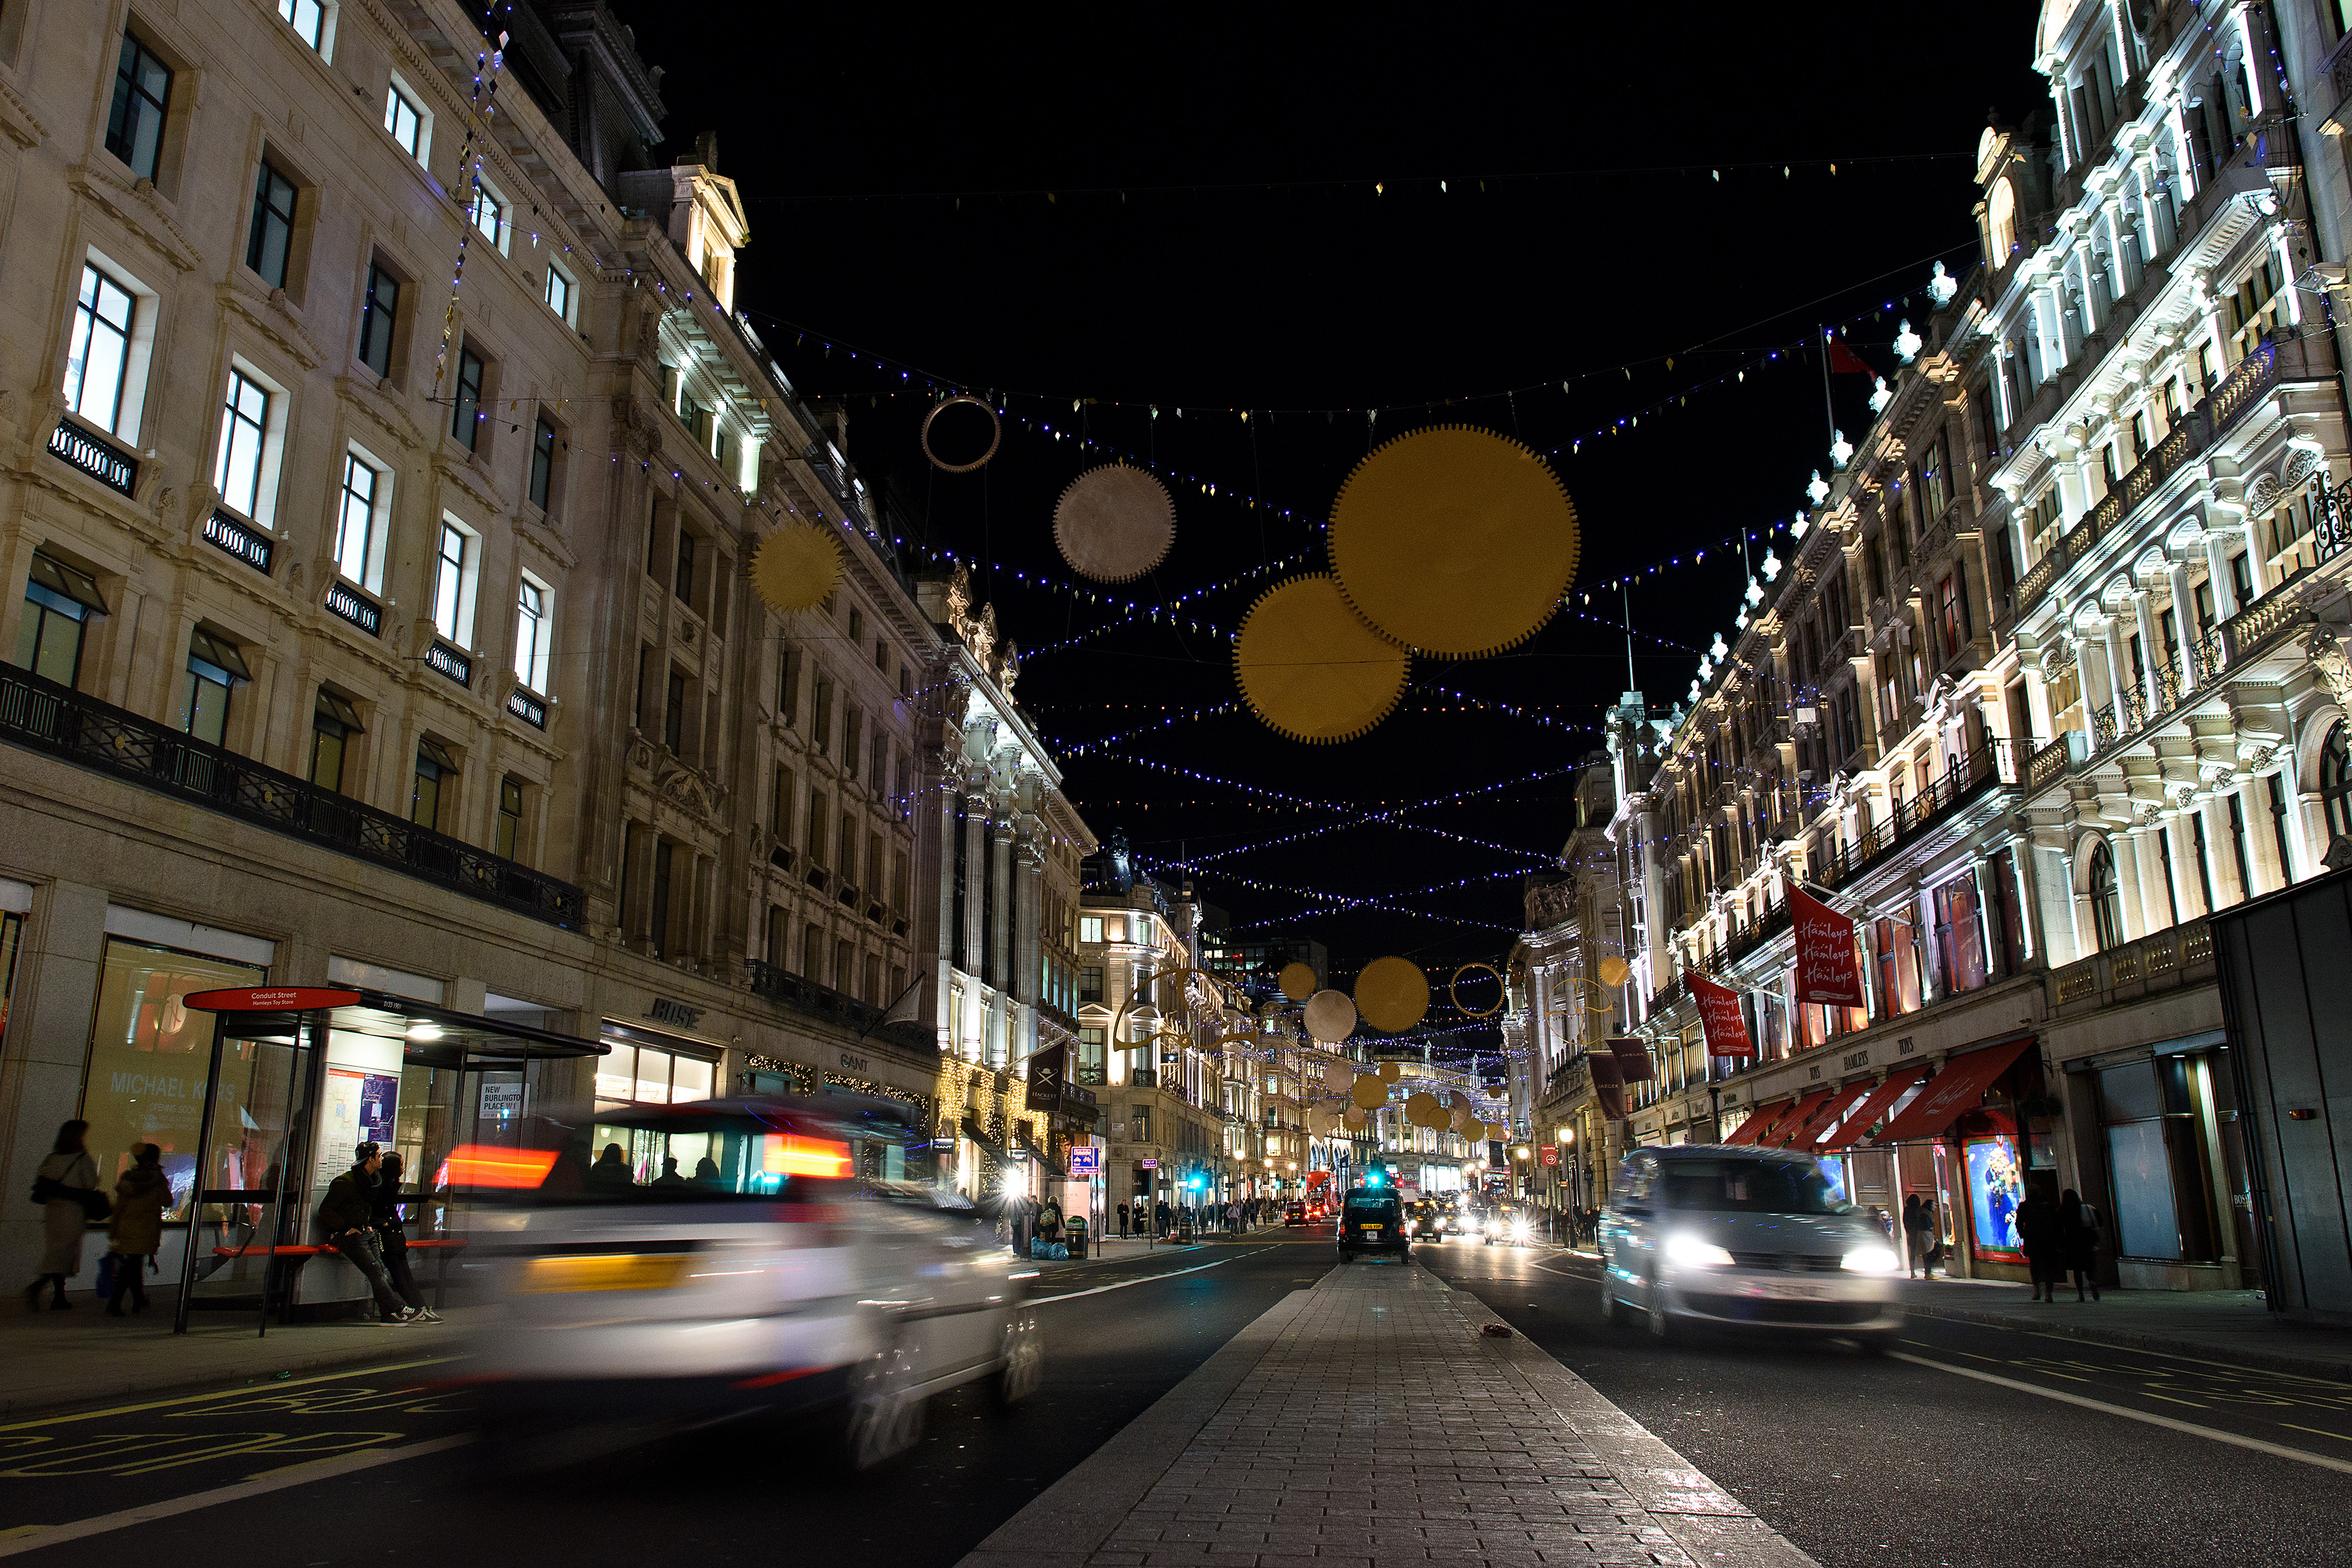 LONDON, ENGLAND - DECEMBER 08: Regent Street displays a series of golden sequins, cogs and coils as part of it's Christmas light display on December 8, 2015 in London, England. British retailers are hoping for a rise in sales over the Christmas period after November's Black Friday sales failed to boost turnover. (Photo by Ben Pruchnie/Getty Images)